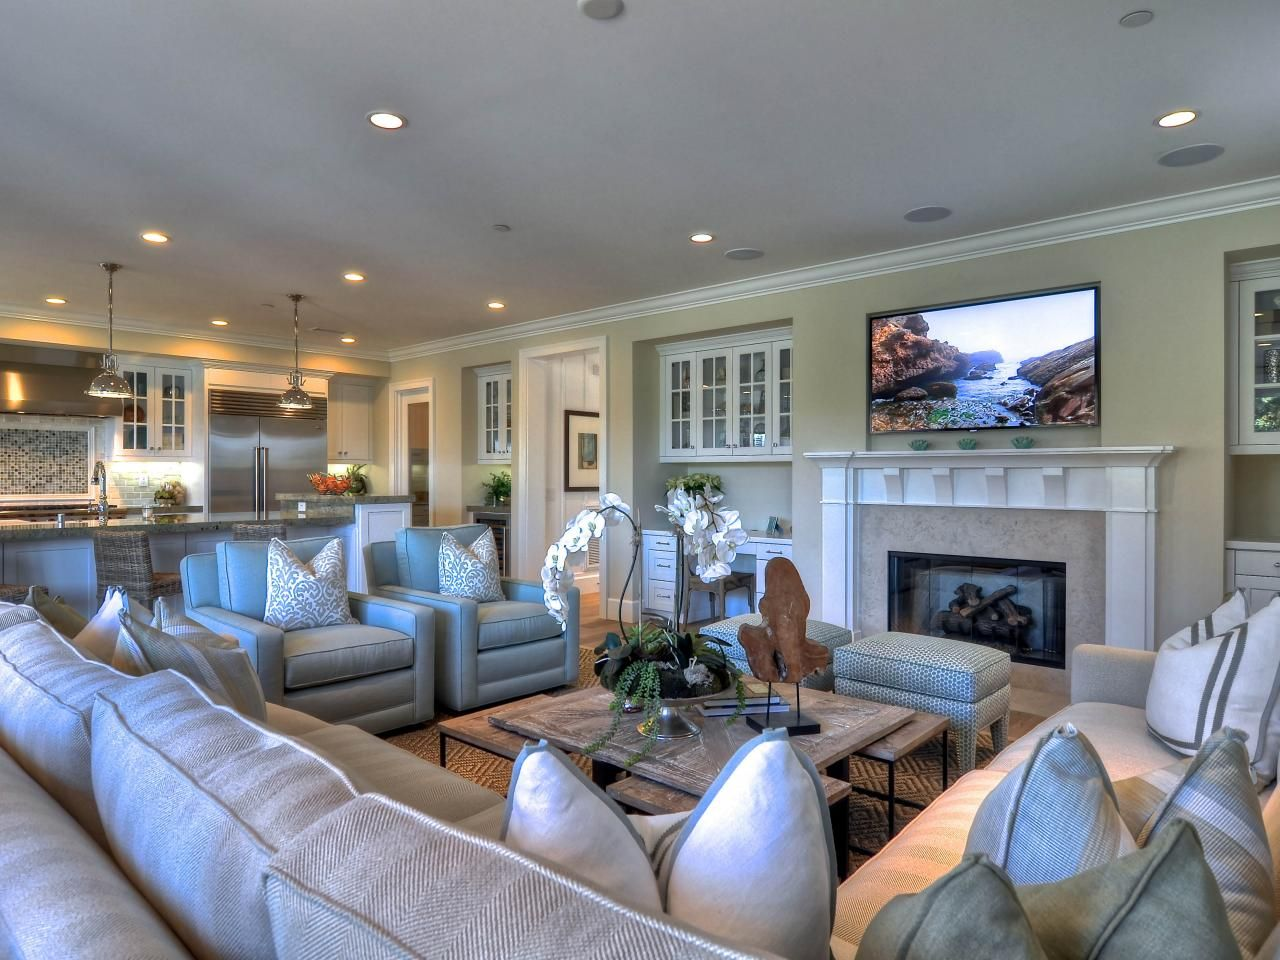 Coastal decor is found in the details in this spacious for Sectional sofa living room layout